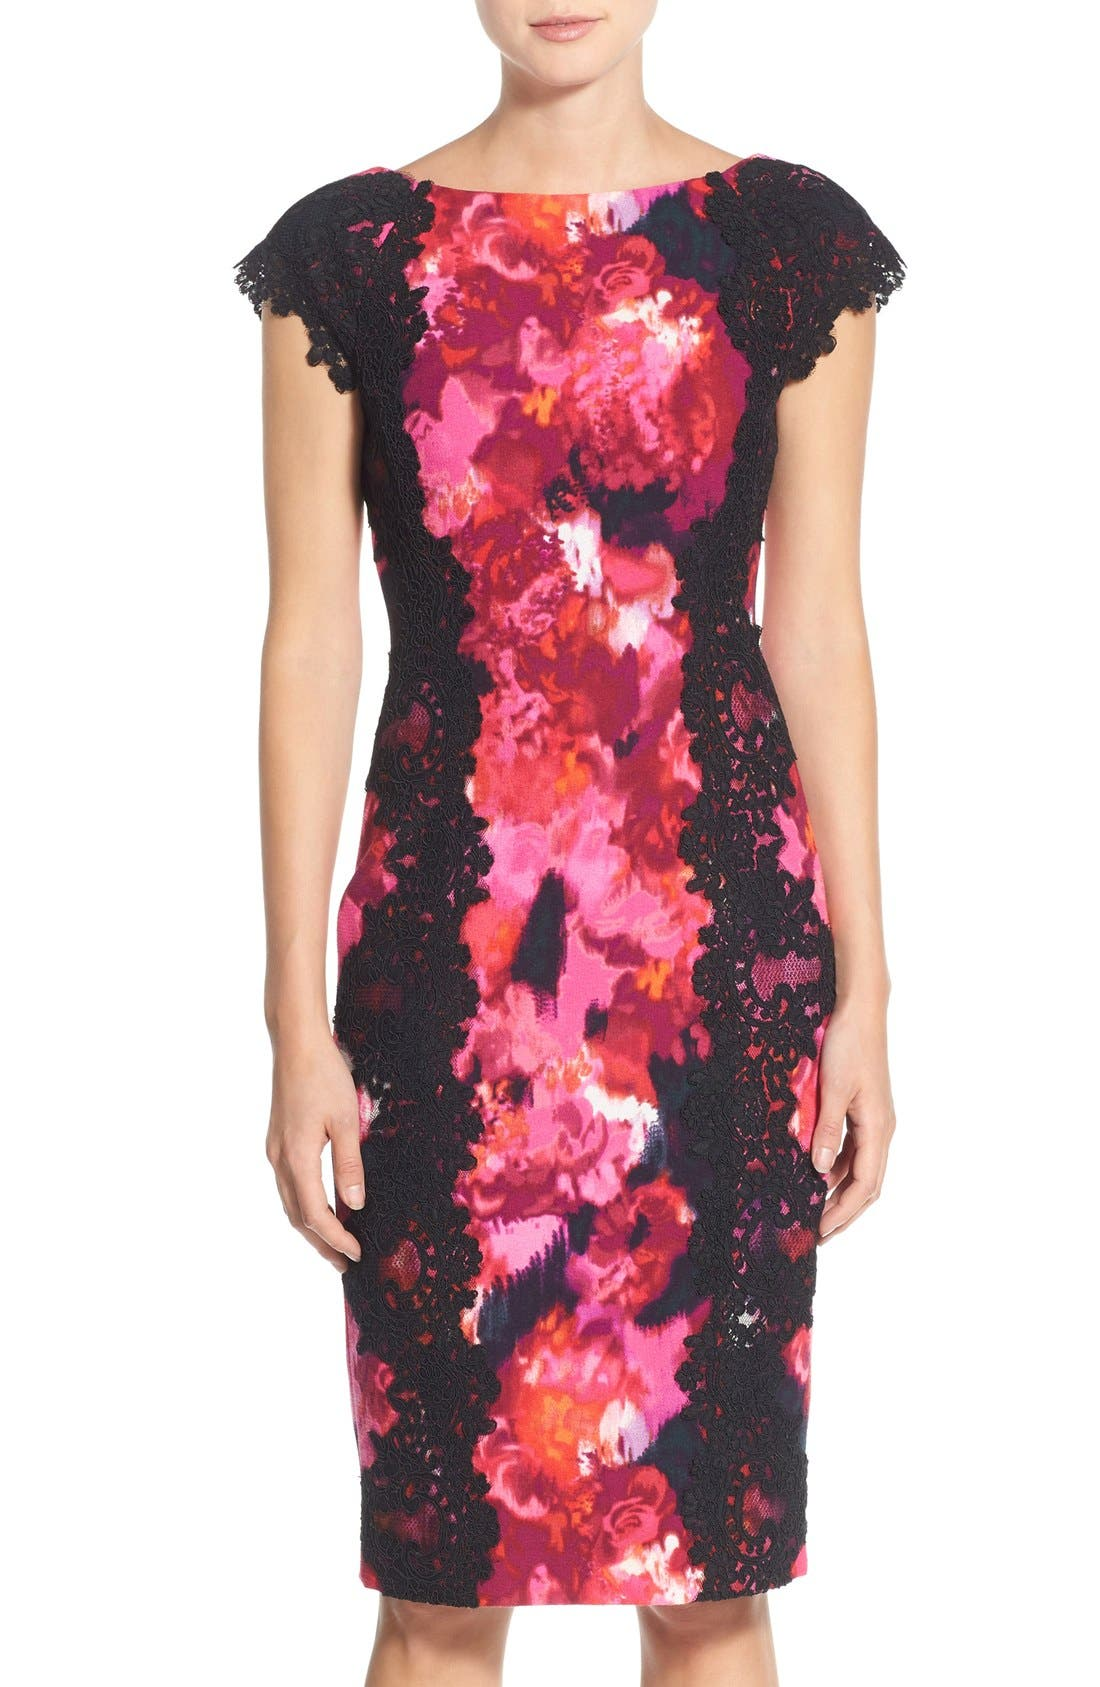 Alternate Image 1 Selected - Maggy London Lace & Crepe Sheath Dress (Regular & Petite) (Nordstrom Exclusive)